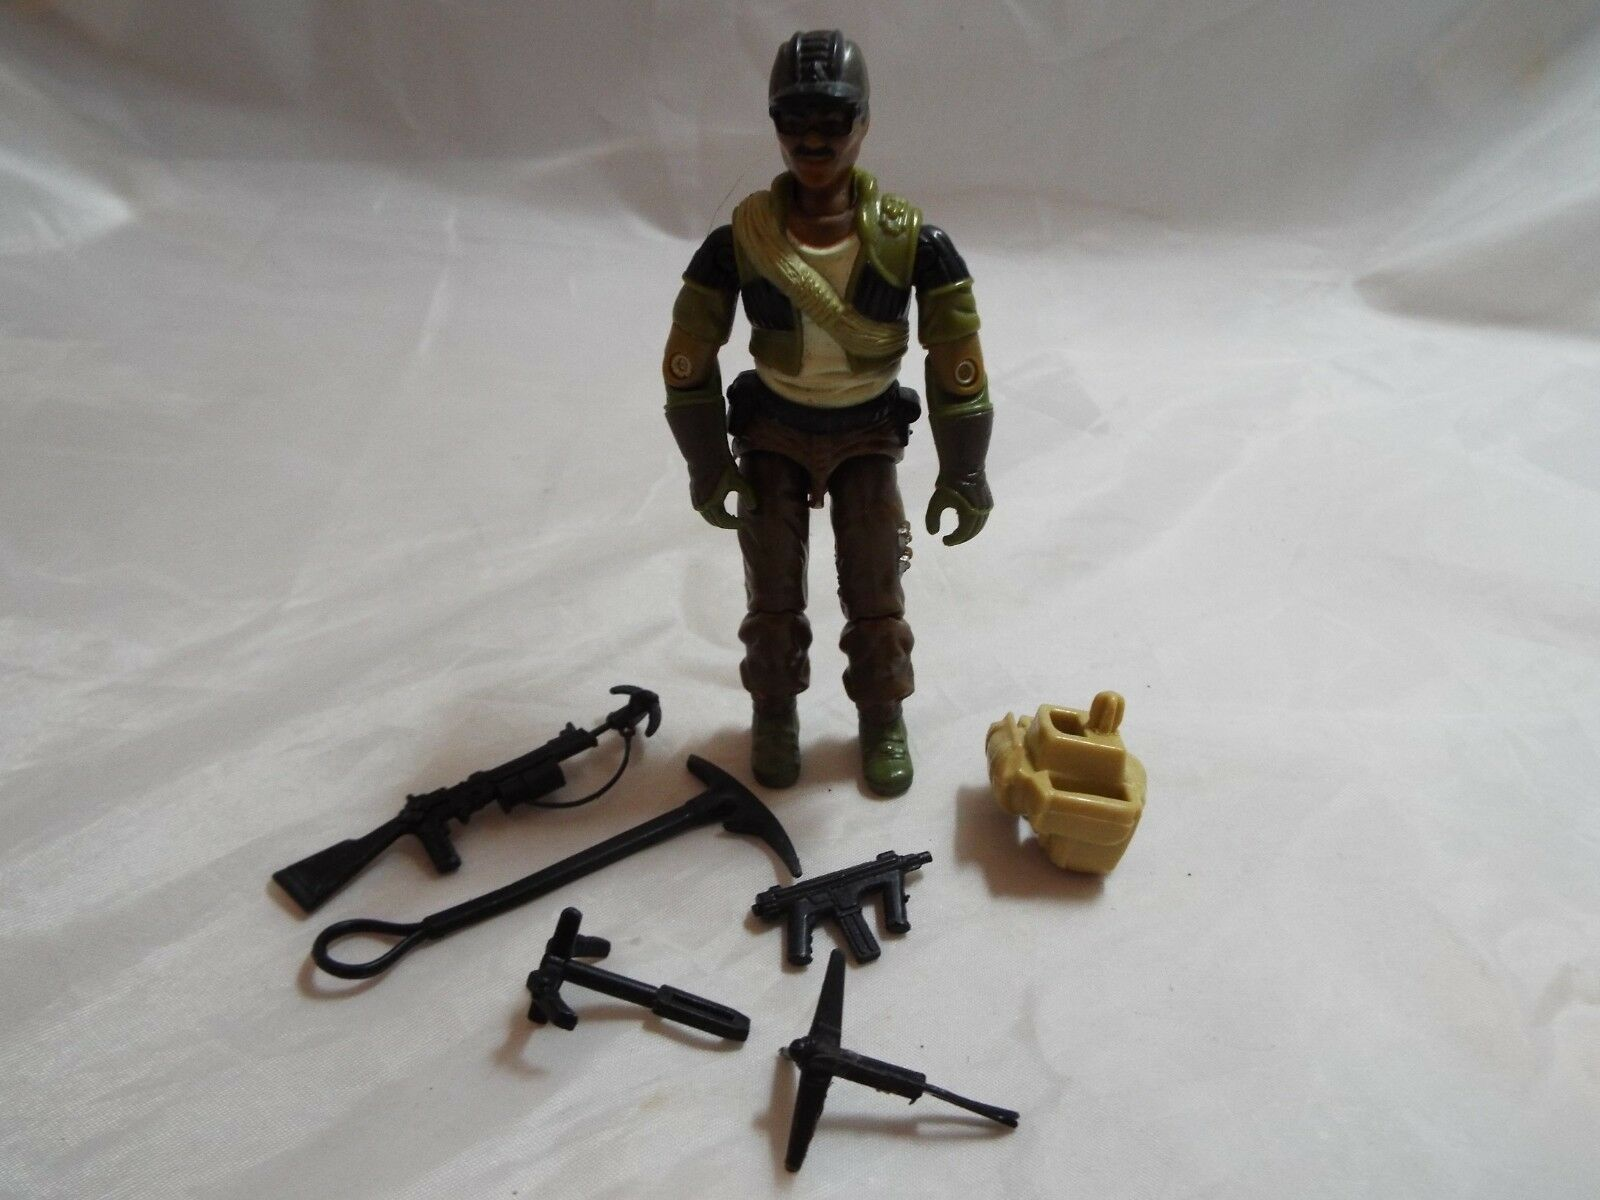 G.I.JOE, ACTION FORCE FIGURE ALPINE V1 FROM 1985 NEAR COMPLETE